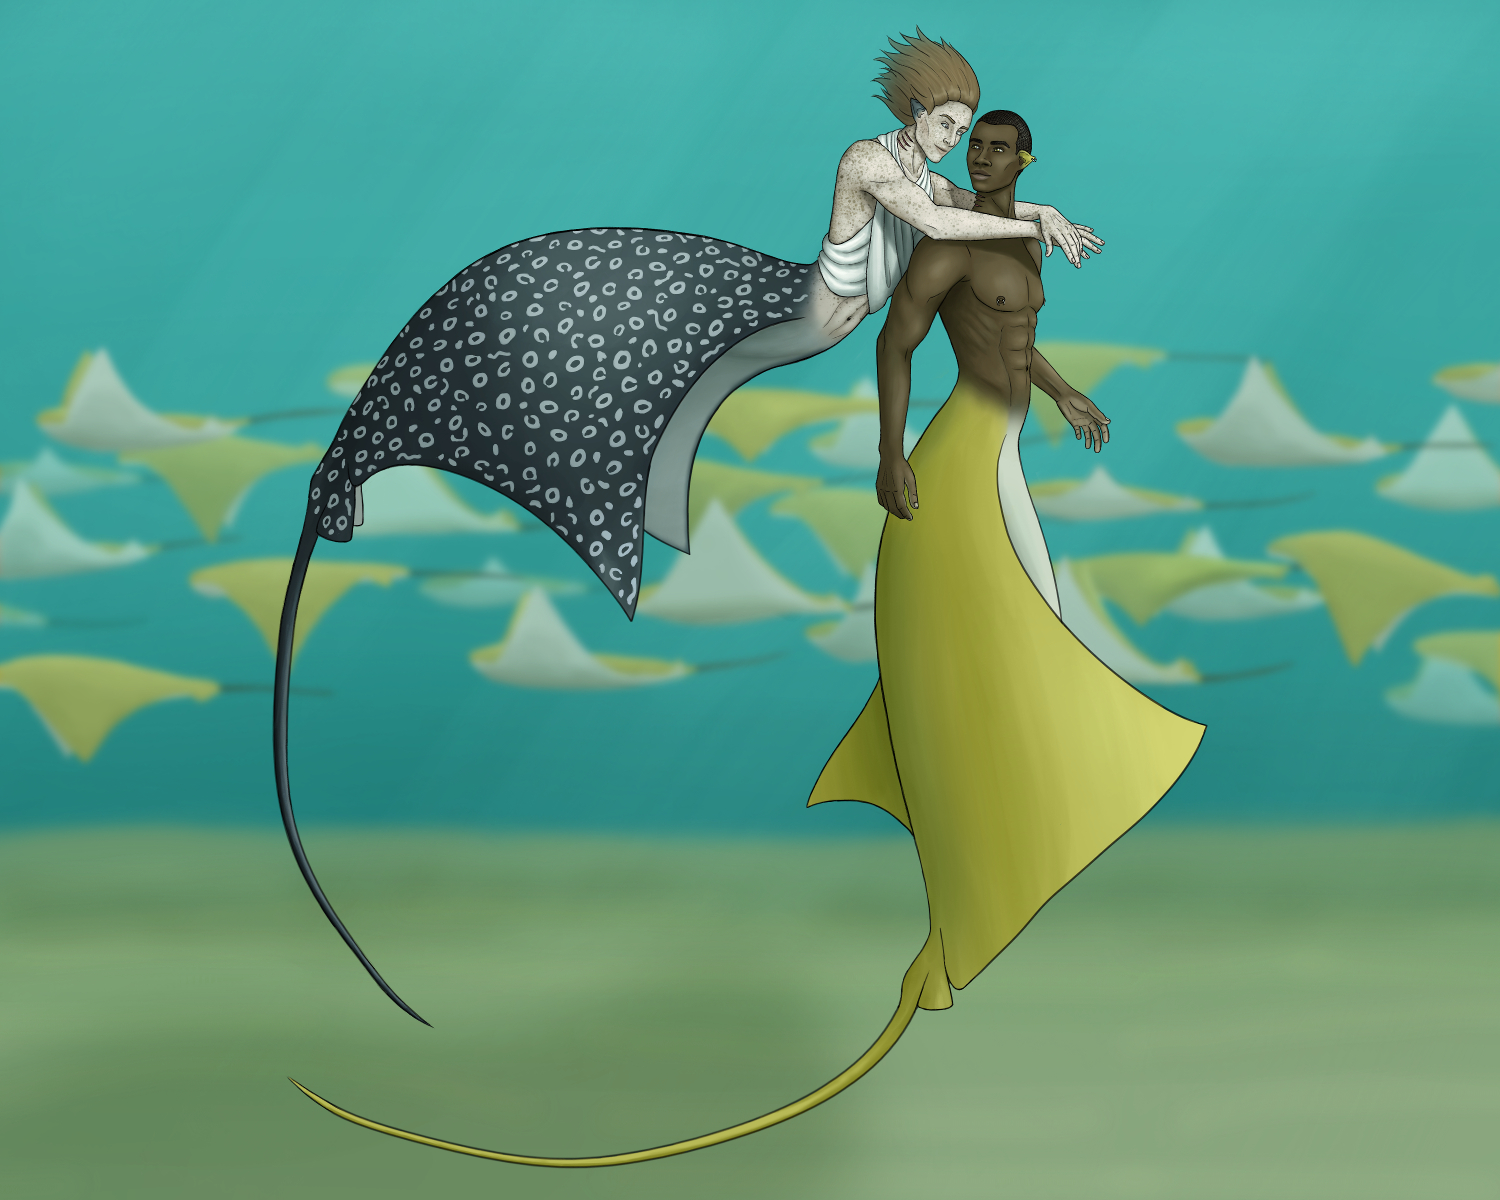 Digital painting of two mermen underwater with stingray tails. One is swimming up behind the other to hug him from behind. The other is fully vertical and turning to see behind him. Their faces are inches apart. Both are smiling. The swimming one is light skinned with lots of freckles, chin-length reddish brown hair flowing behind him, and a white piece of fabric loosely draped around the back of his neck, covering his chest, wrapping around to his back. His tail is dark grey with white spots, like a spotted eagle ray. The turning merman is dark-skinned with a shaved head, a muscular body, curved white piercings in his ear lobe and nipples, and a golden tail like a cownose stingray. They're in teal water with cownose stingrays swimming by in the background.